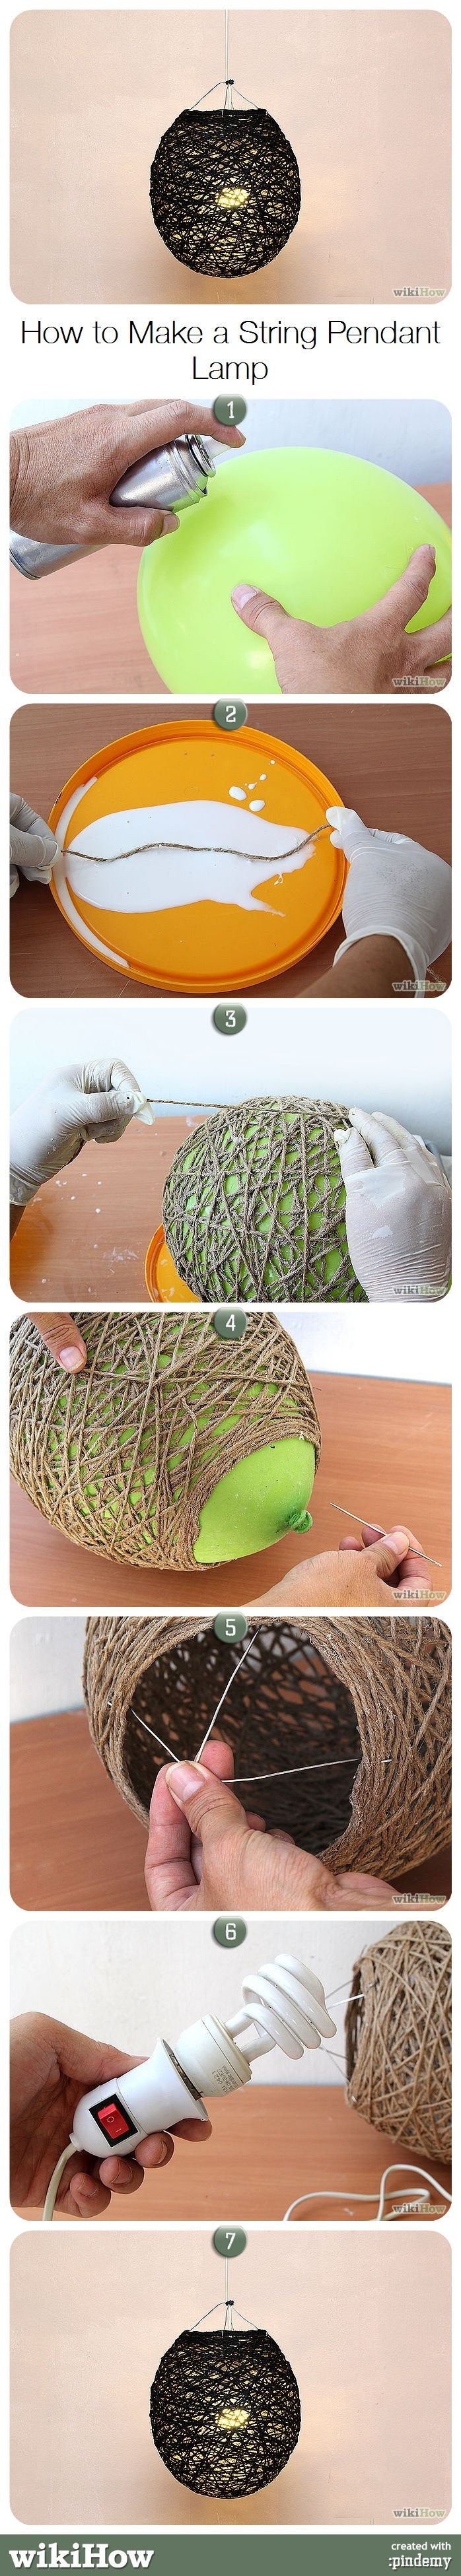 How to Make a String Pendant Lamp